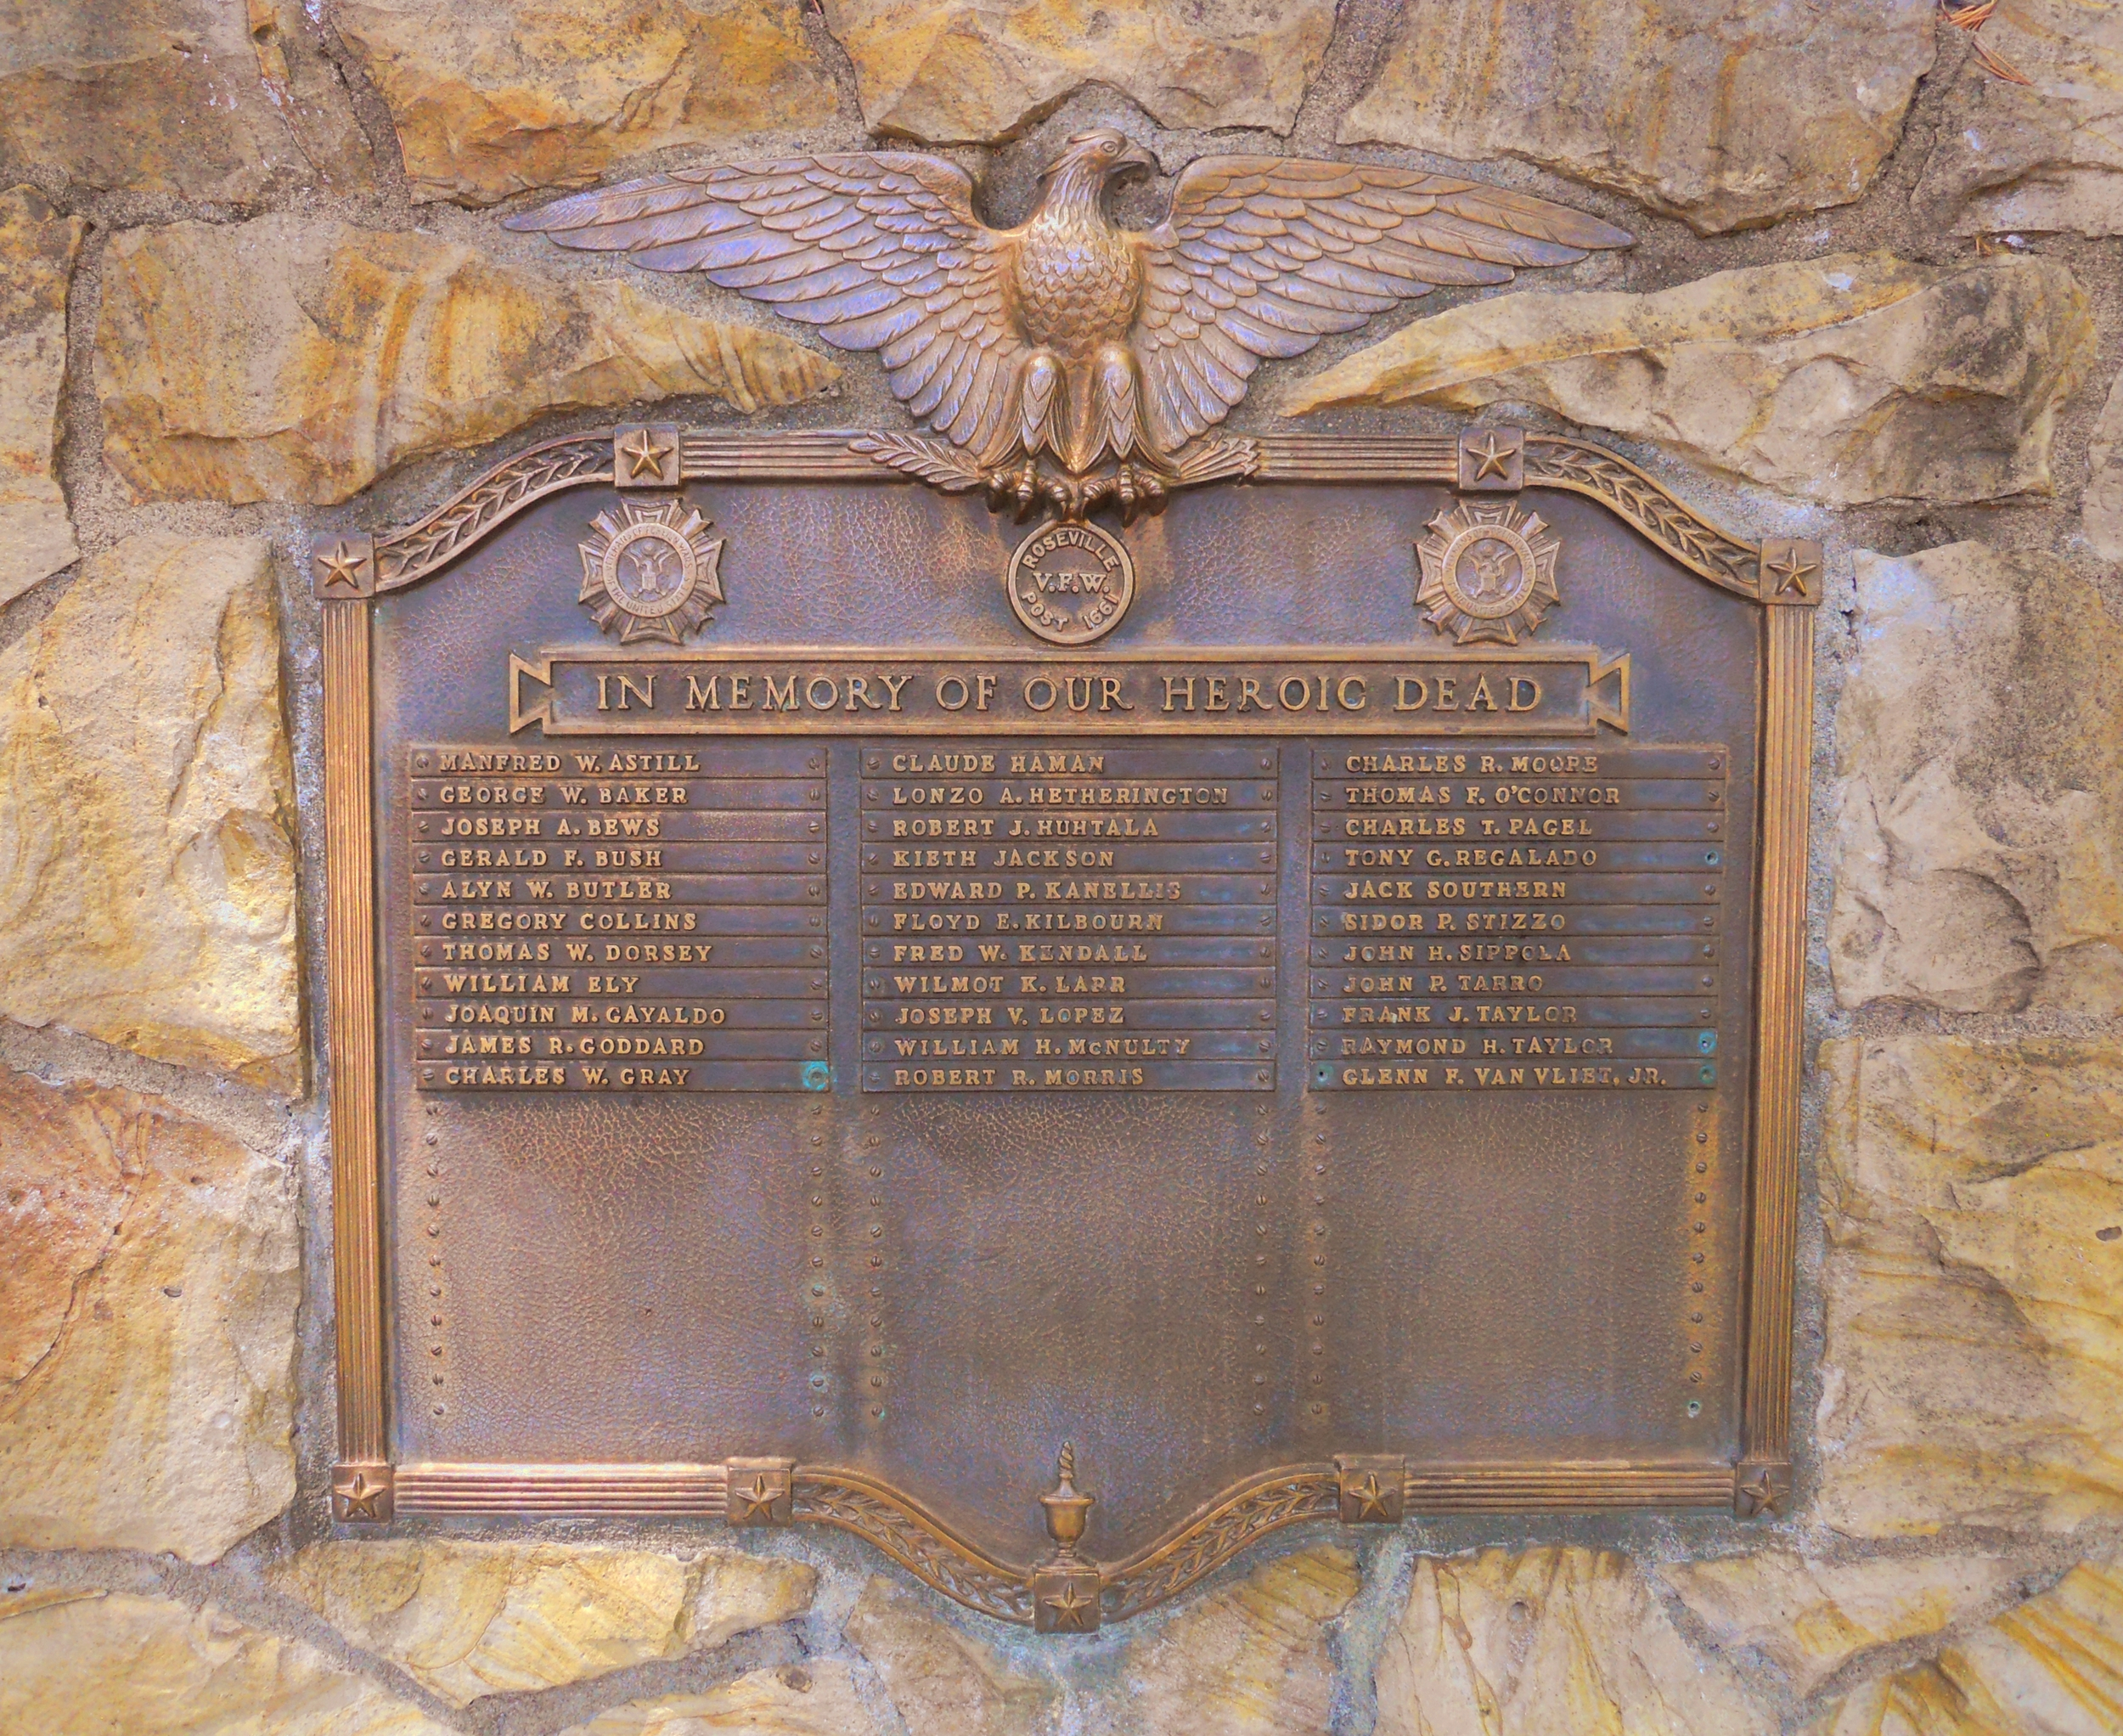 The bronze plaque on the monument carries 33 names of Roseville soldiers who died defending their country.  Click here for details of those named on this plaque.